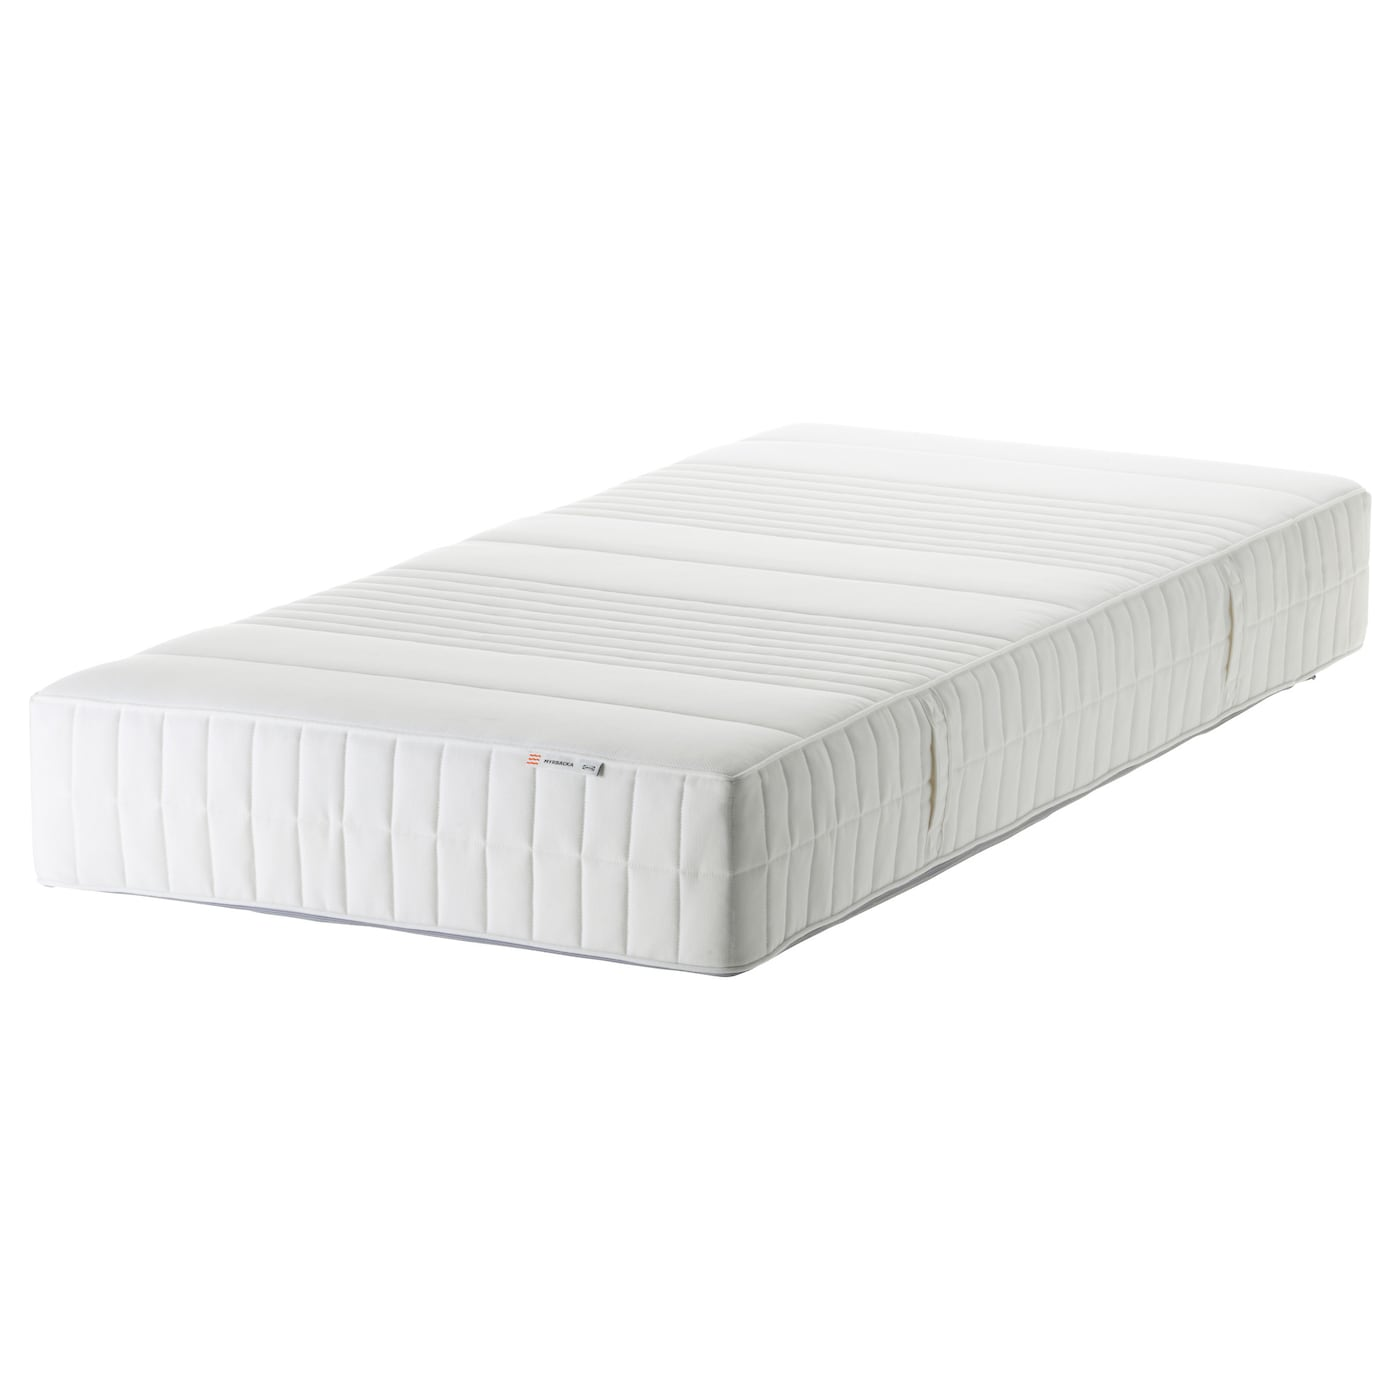 myrbacka matelas latex mi ferme blanc 80 x 200 cm ikea. Black Bedroom Furniture Sets. Home Design Ideas